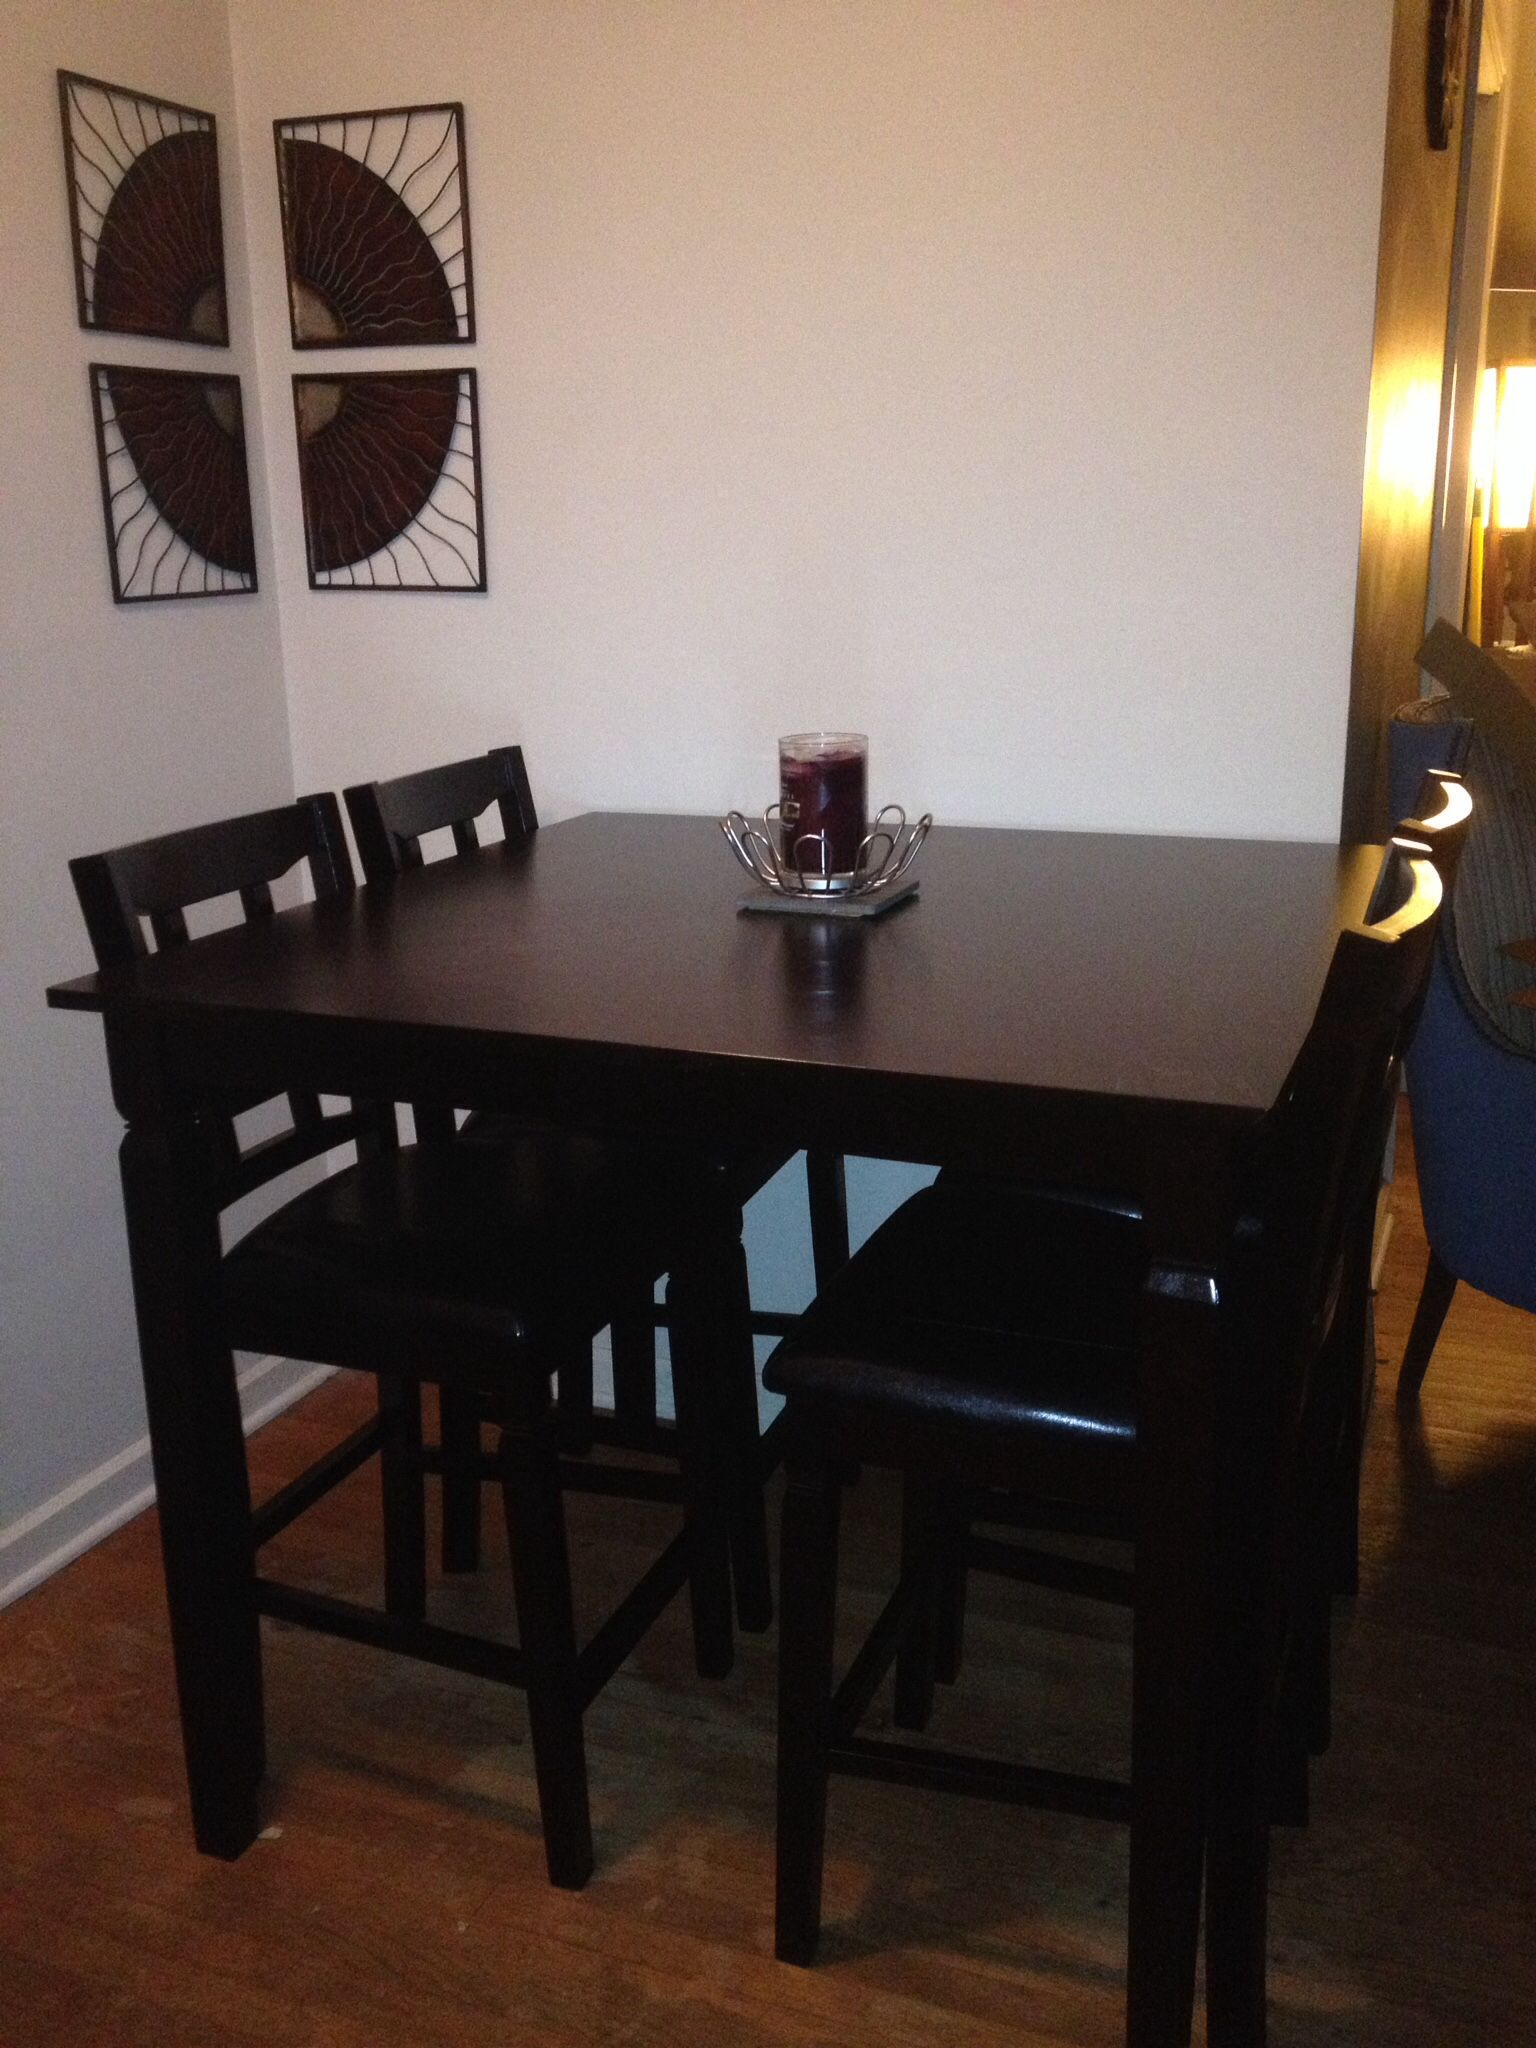 Espresso Pub Table and chairs from Big Lots! Works great in our small dining space & Espresso Pub Table and chairs from Big Lots! Works great in our ...